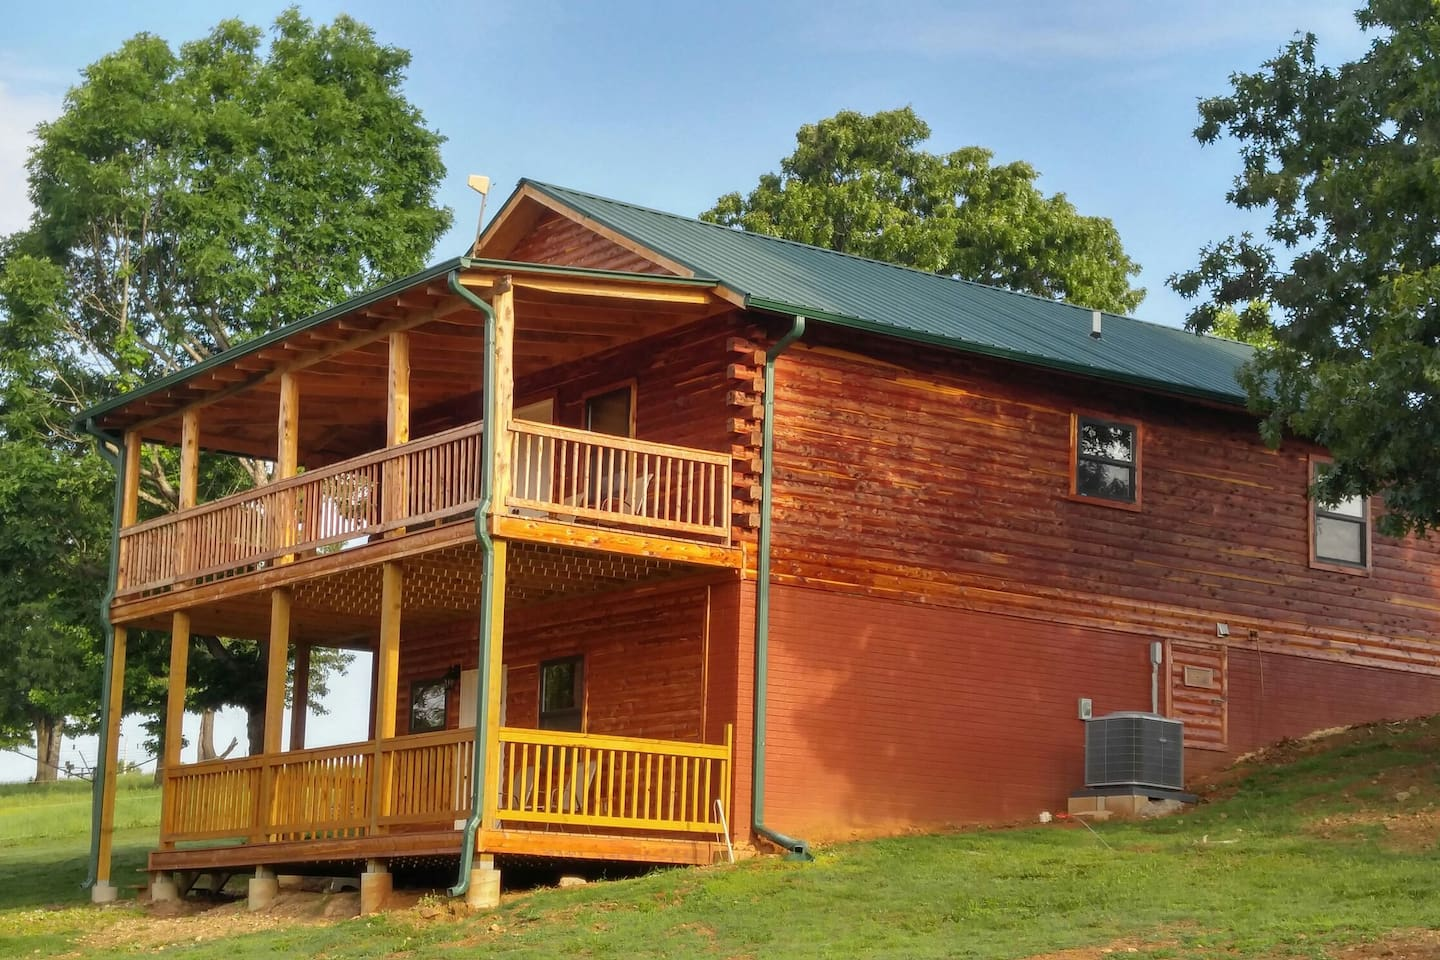 4 bed, 2 bath, fireplace, fully equipped kitchen, Red neck porch with fire ring. Biker friendly and bring your OWN HORSE.